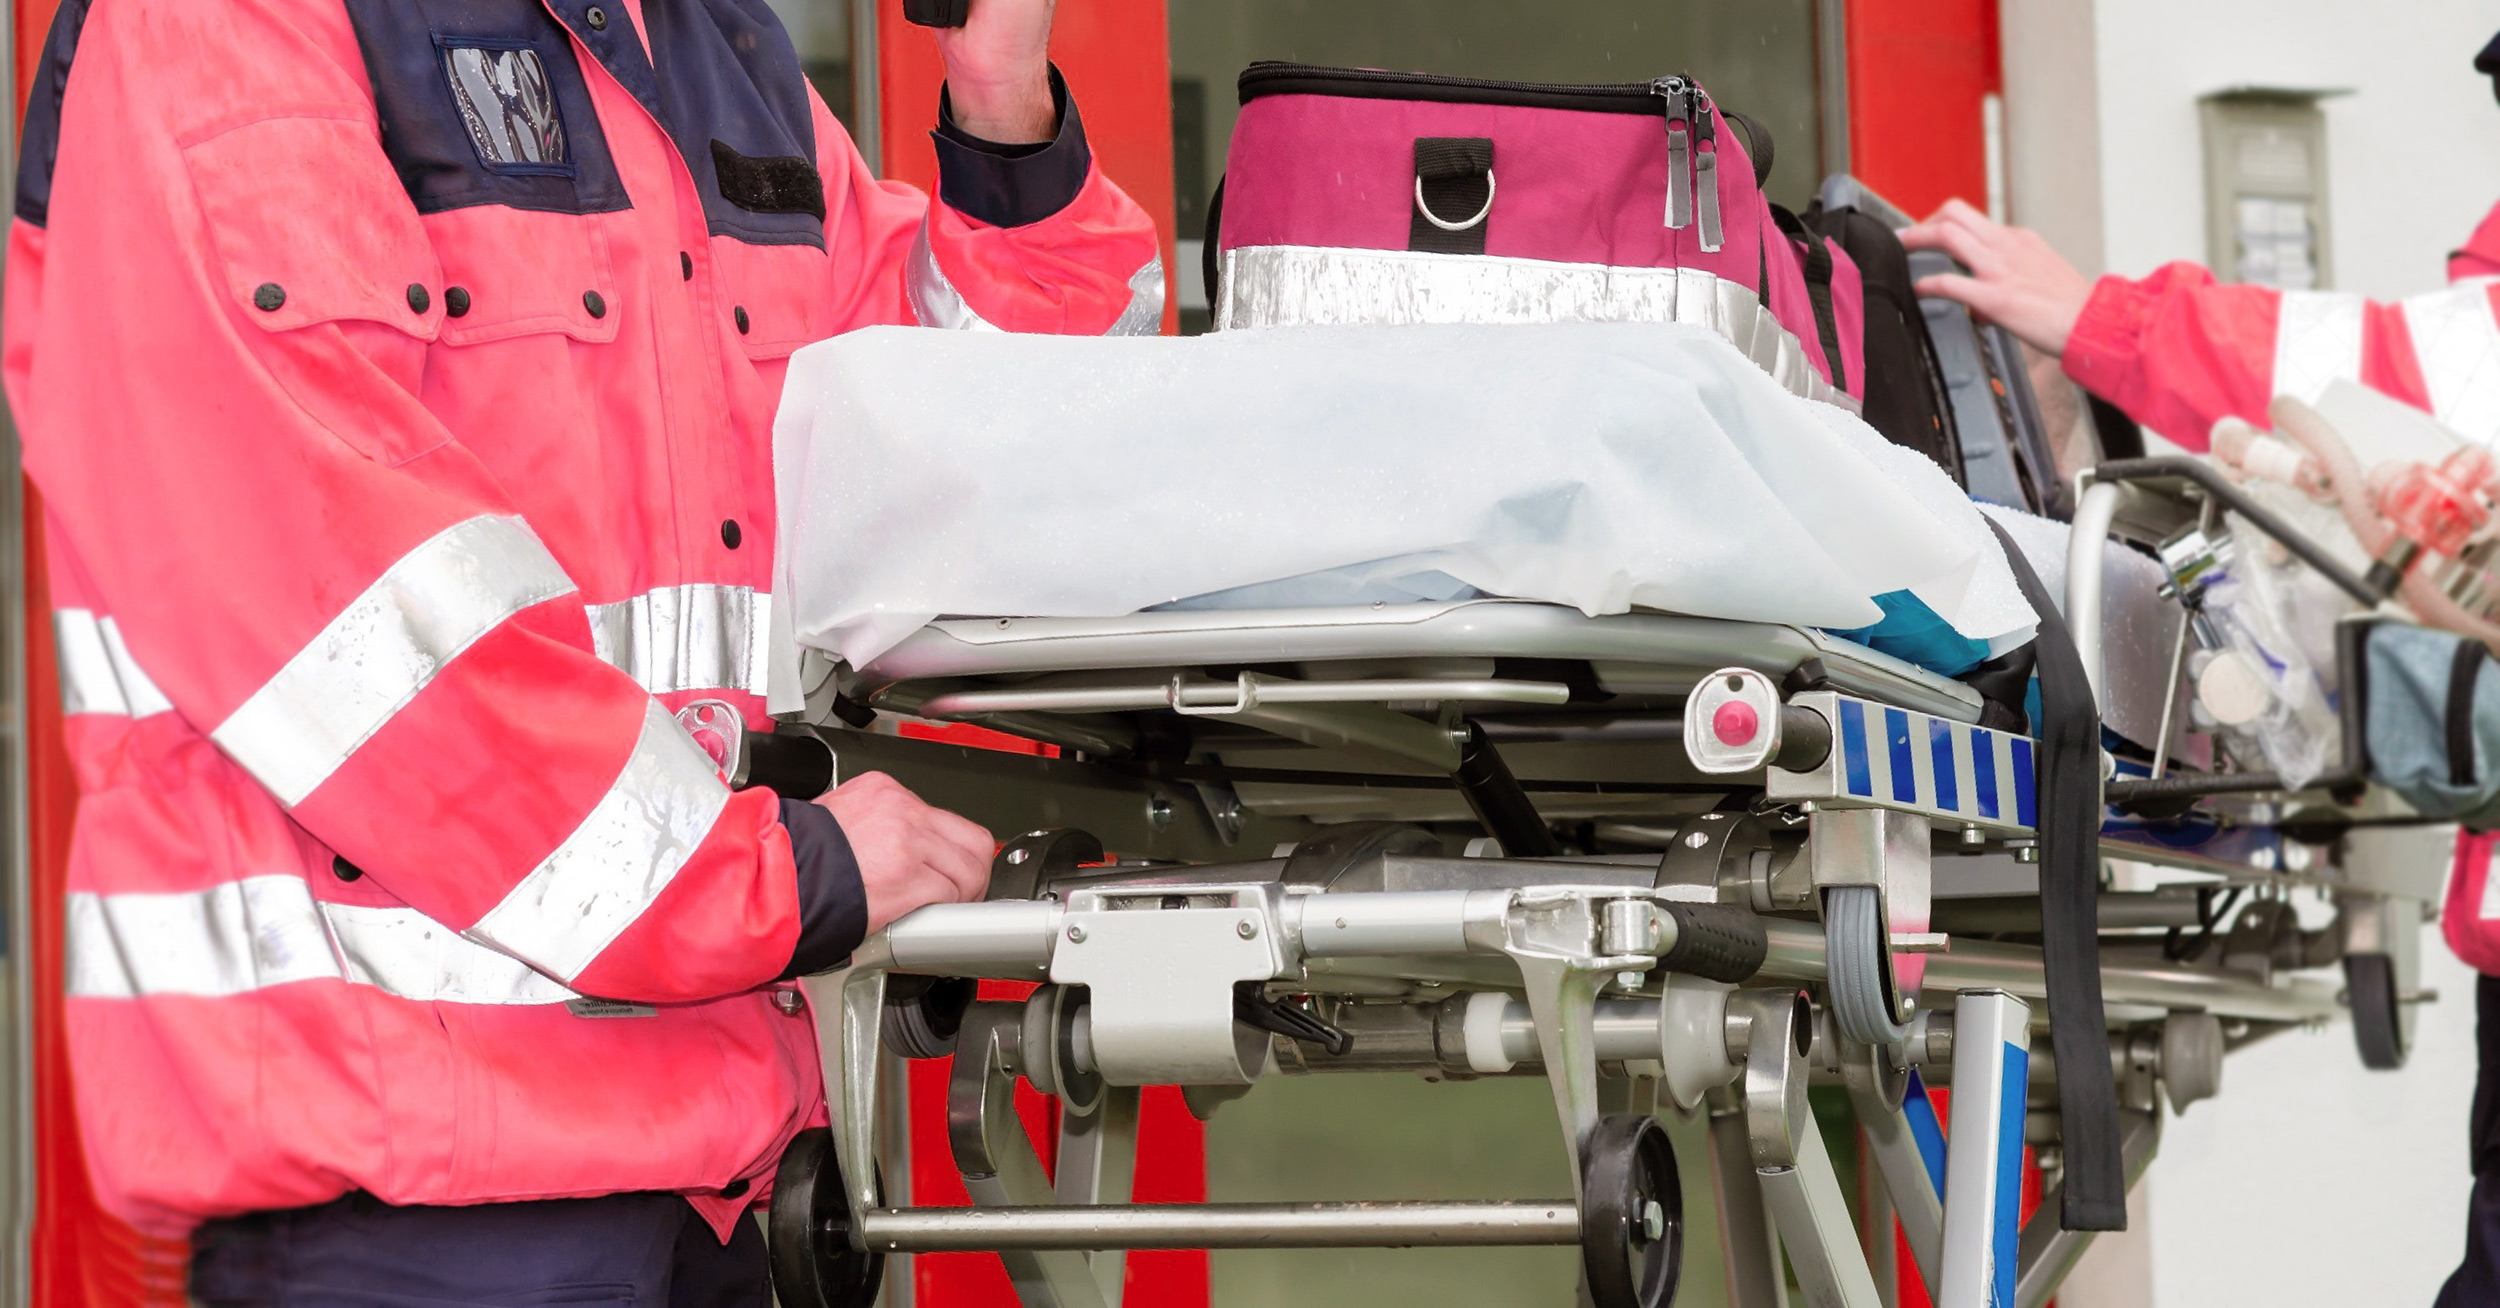 CMS 855B Enrollment Best Practices for Ambulance Billing